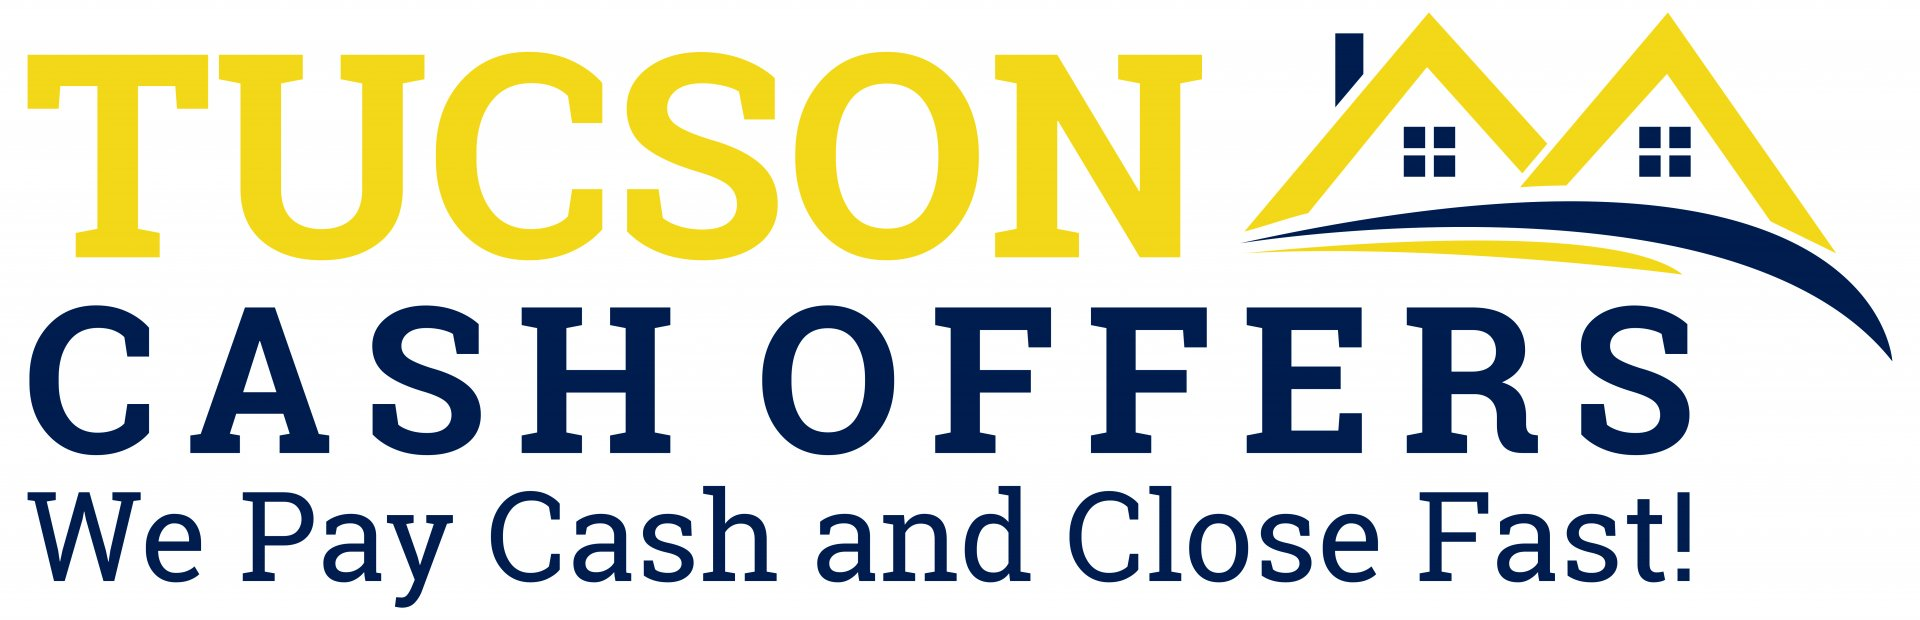 Tucson Cash Offers logo